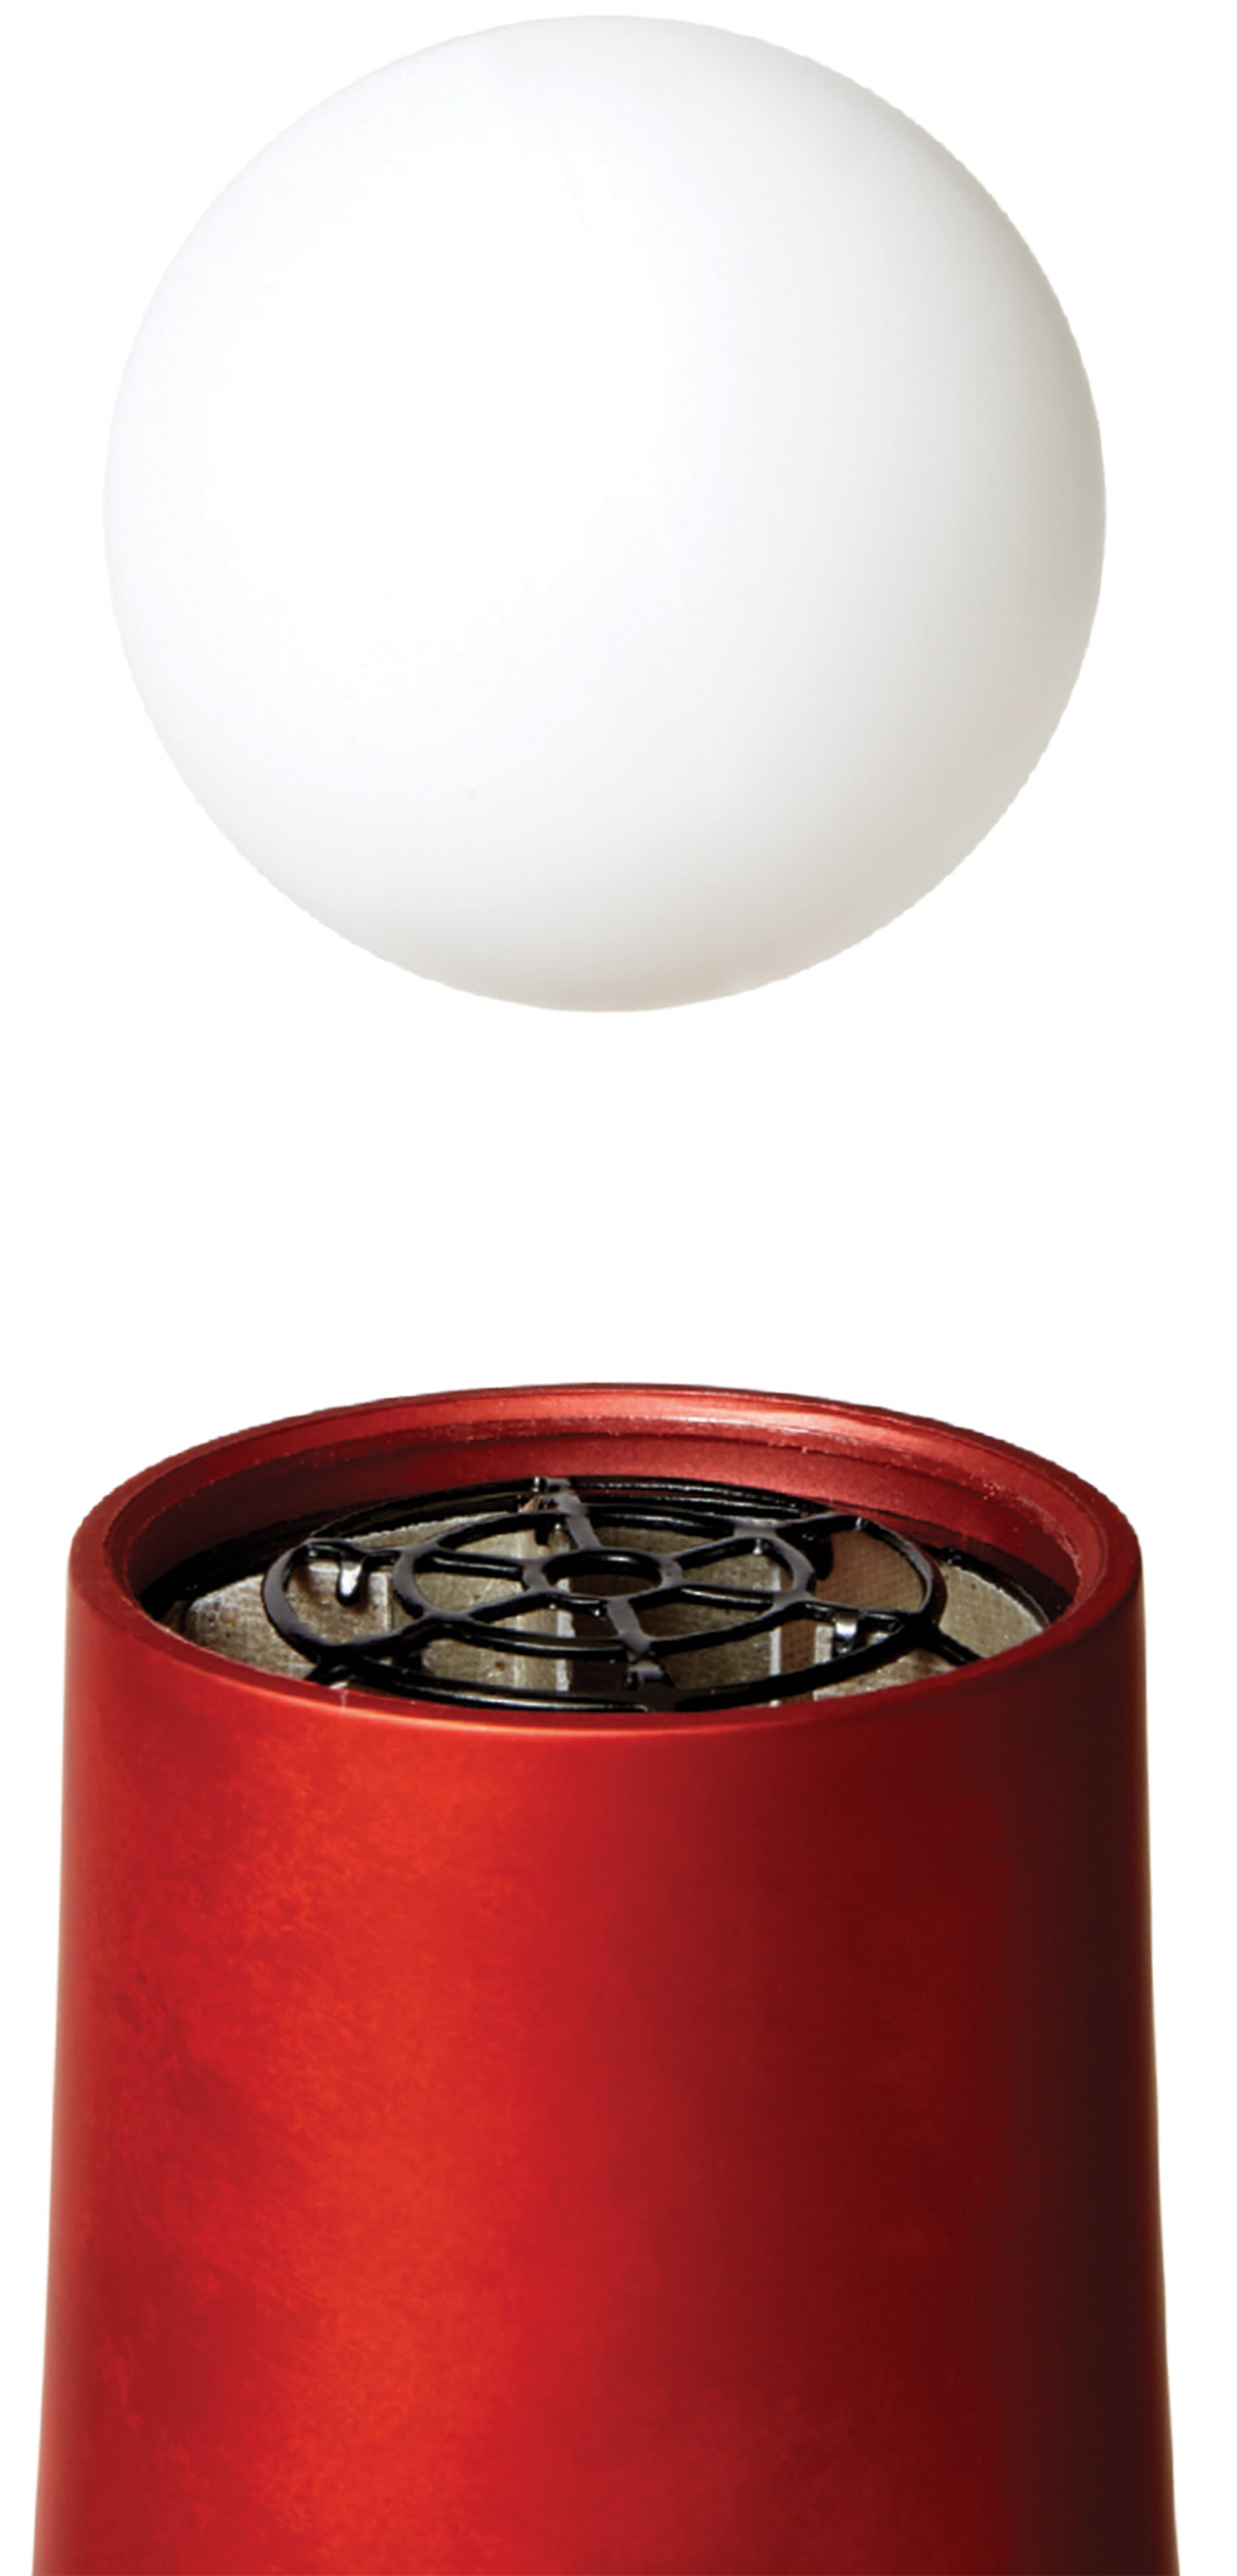 photo of a ping pong ball and hair dryer